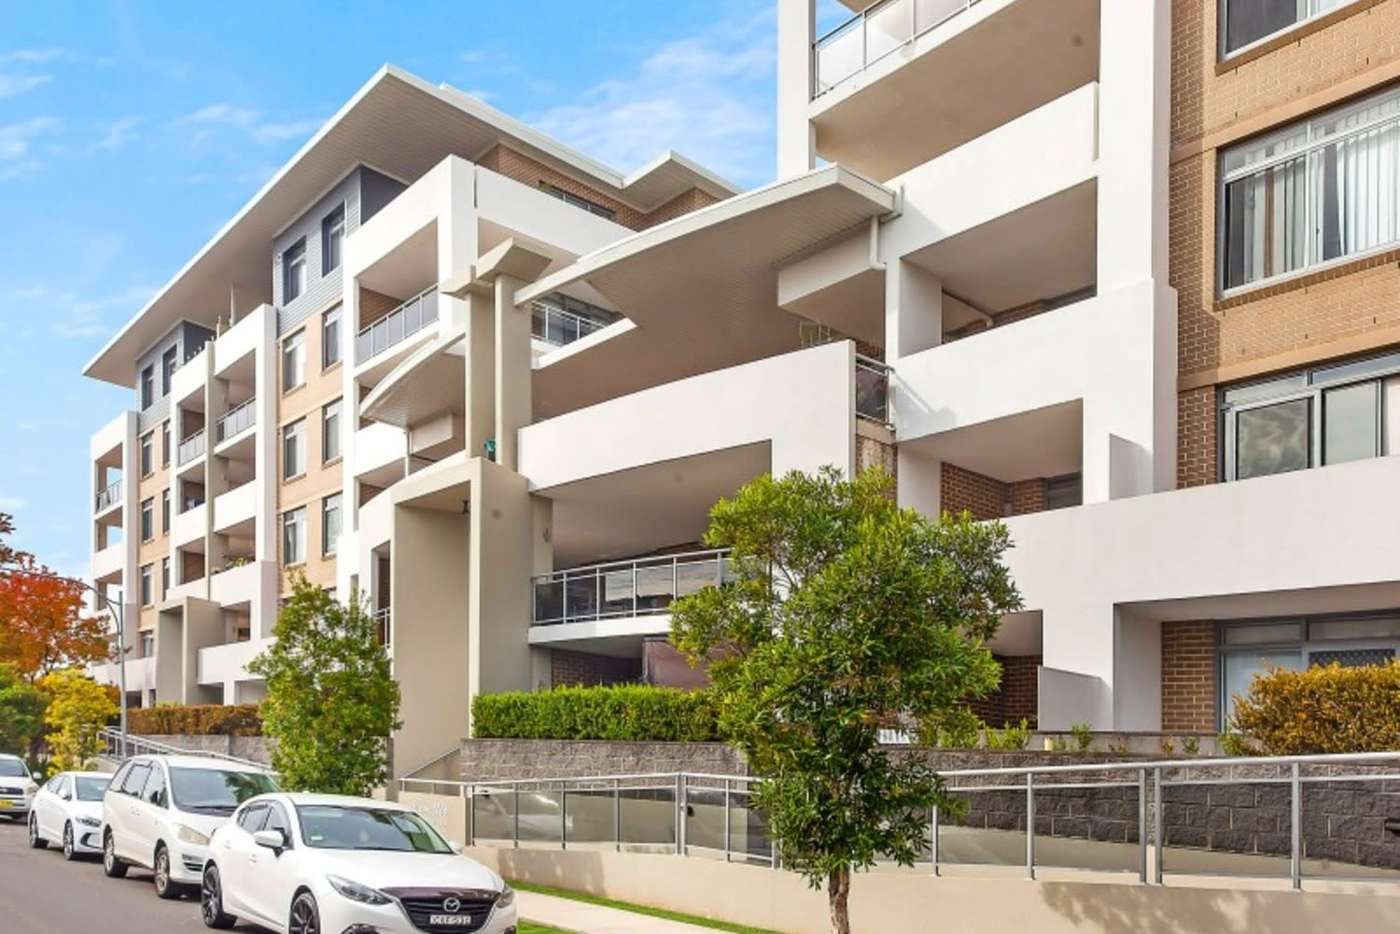 Main view of Homely apartment listing, 43/28 Brickworks Drive, Holroyd NSW 2142